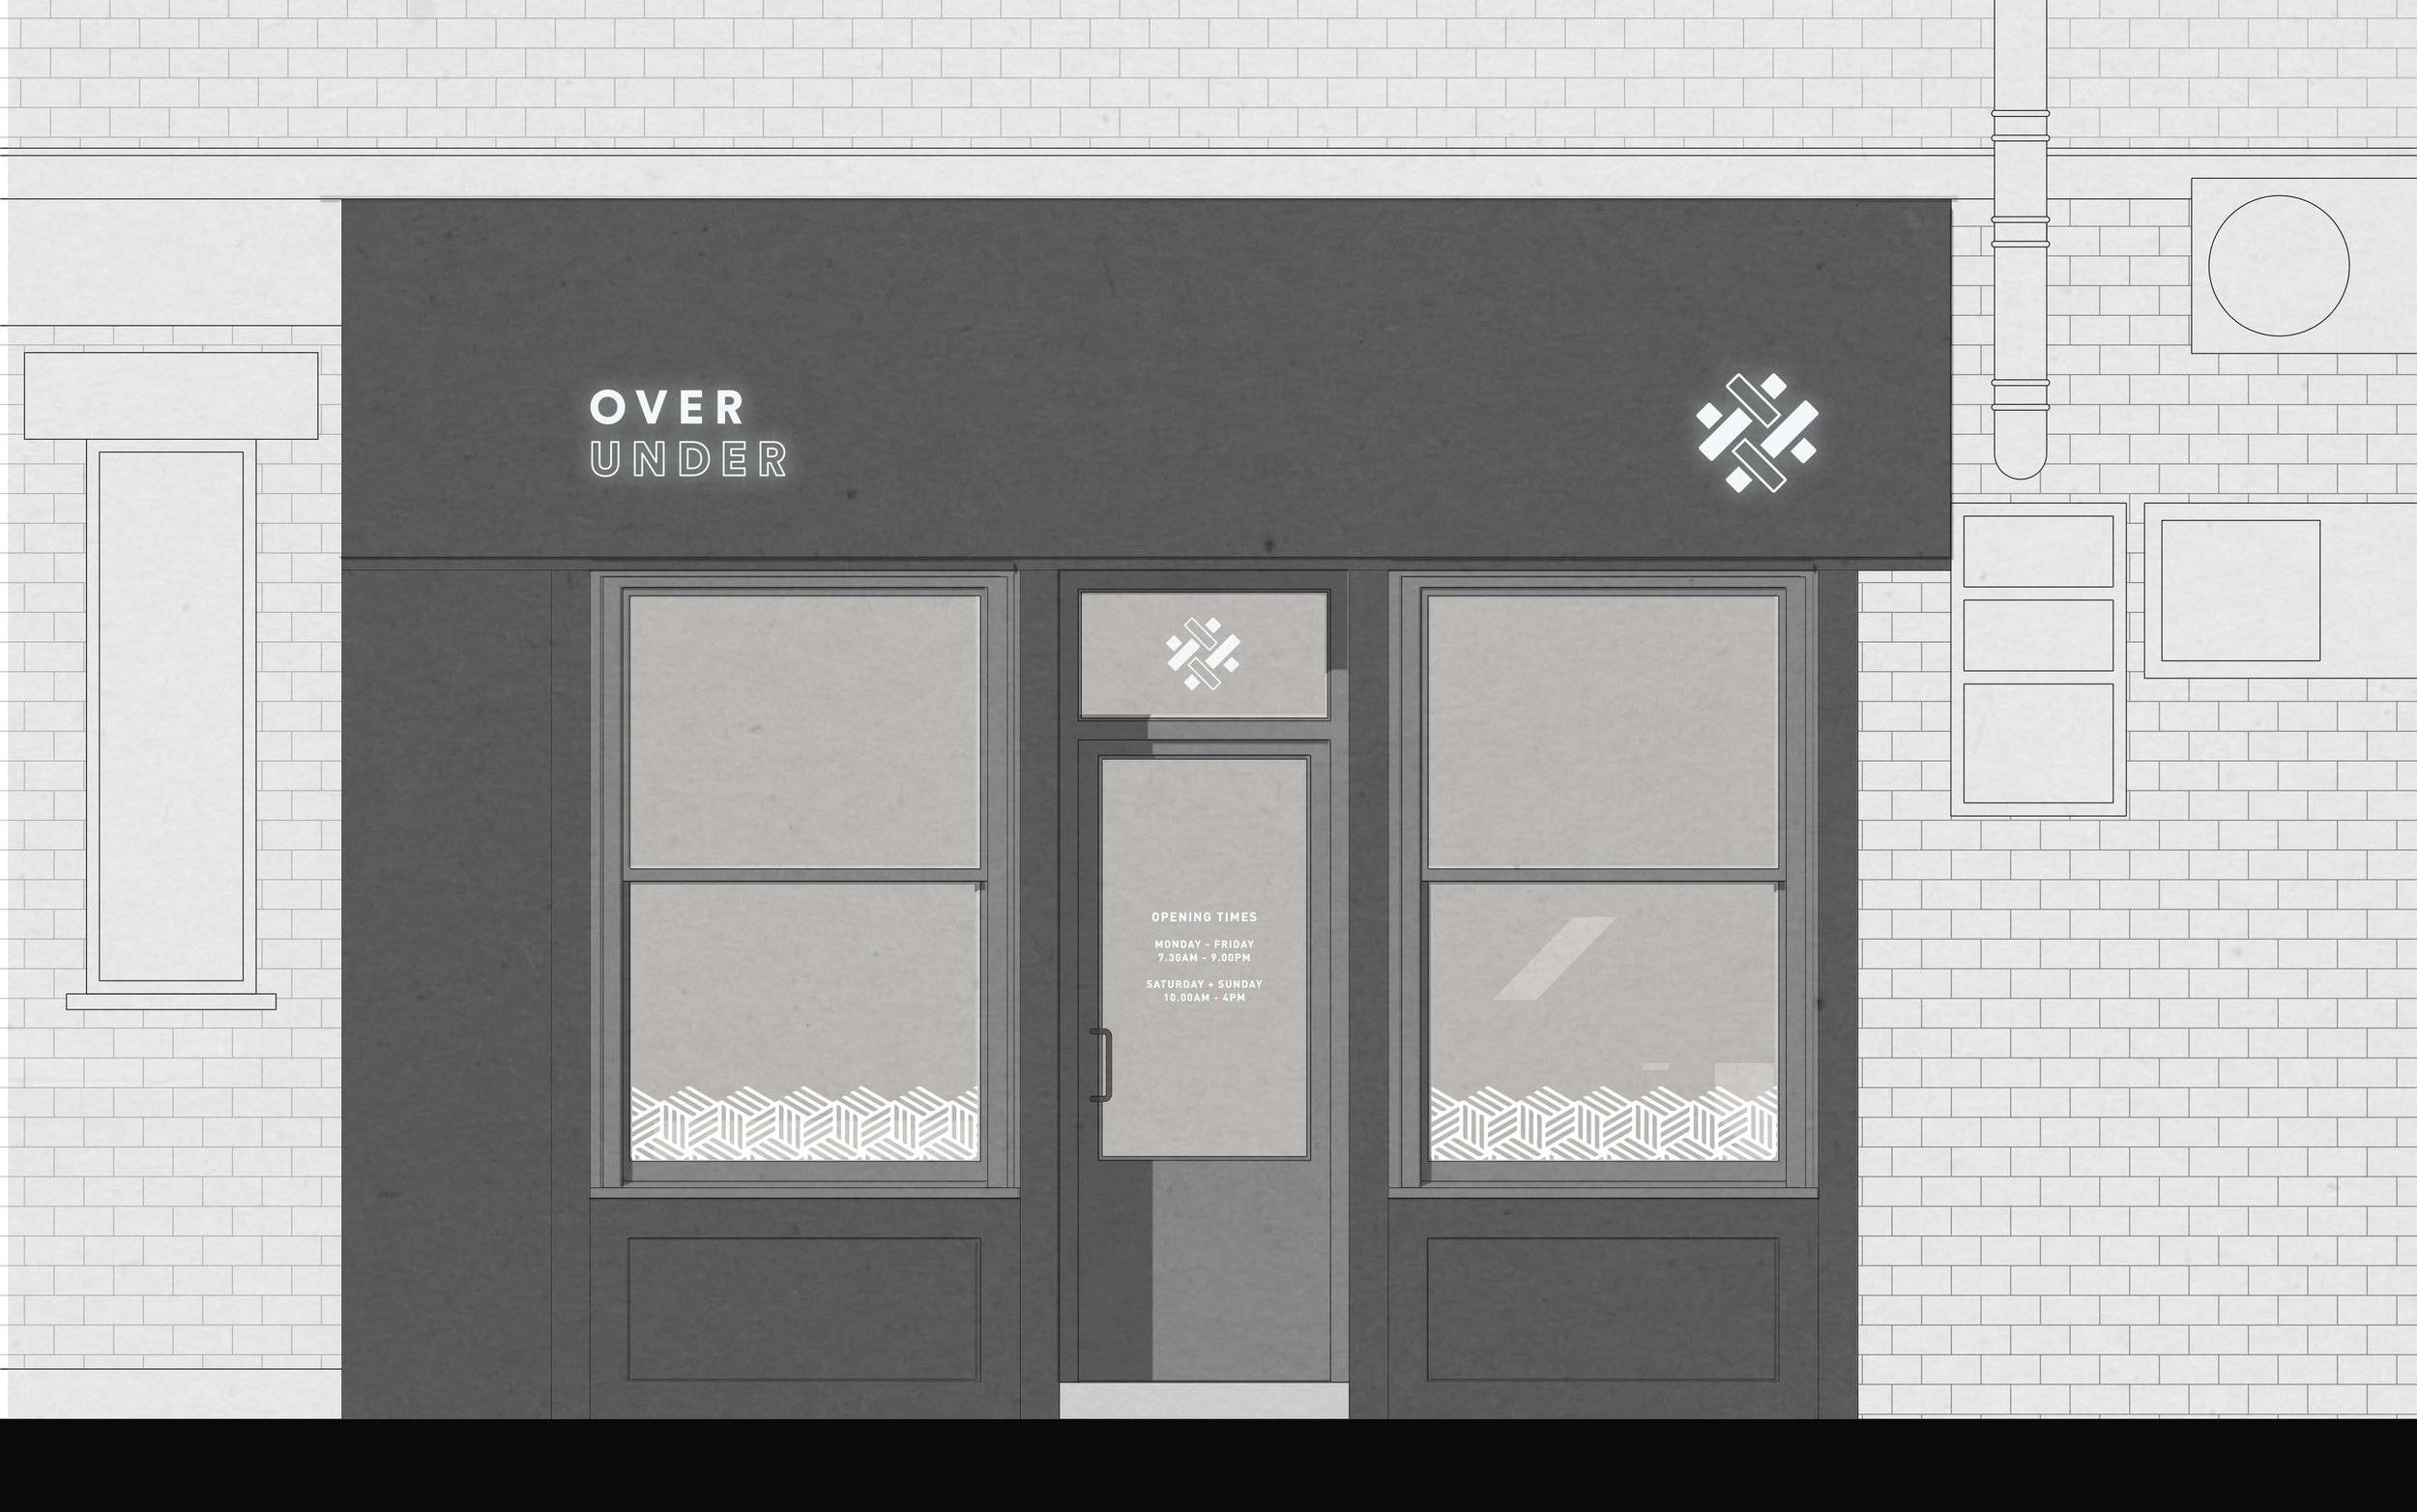 Bolter design shop front design for Over Under